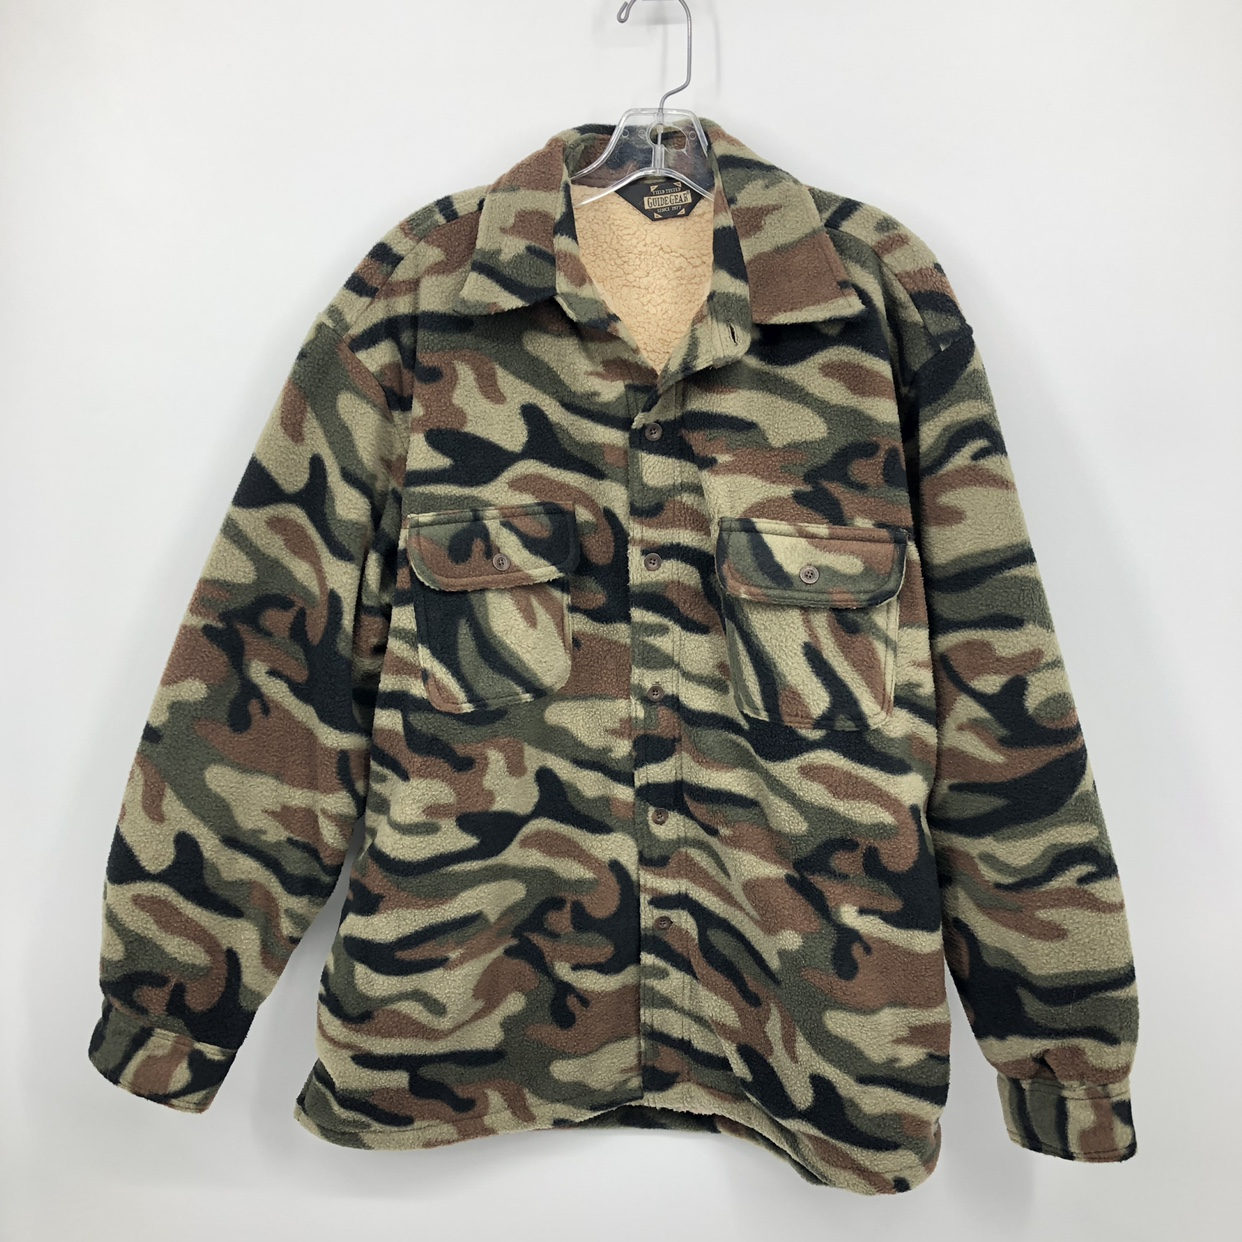 Product Image 1 - Vintage Camo Jacket Sherpa Lined